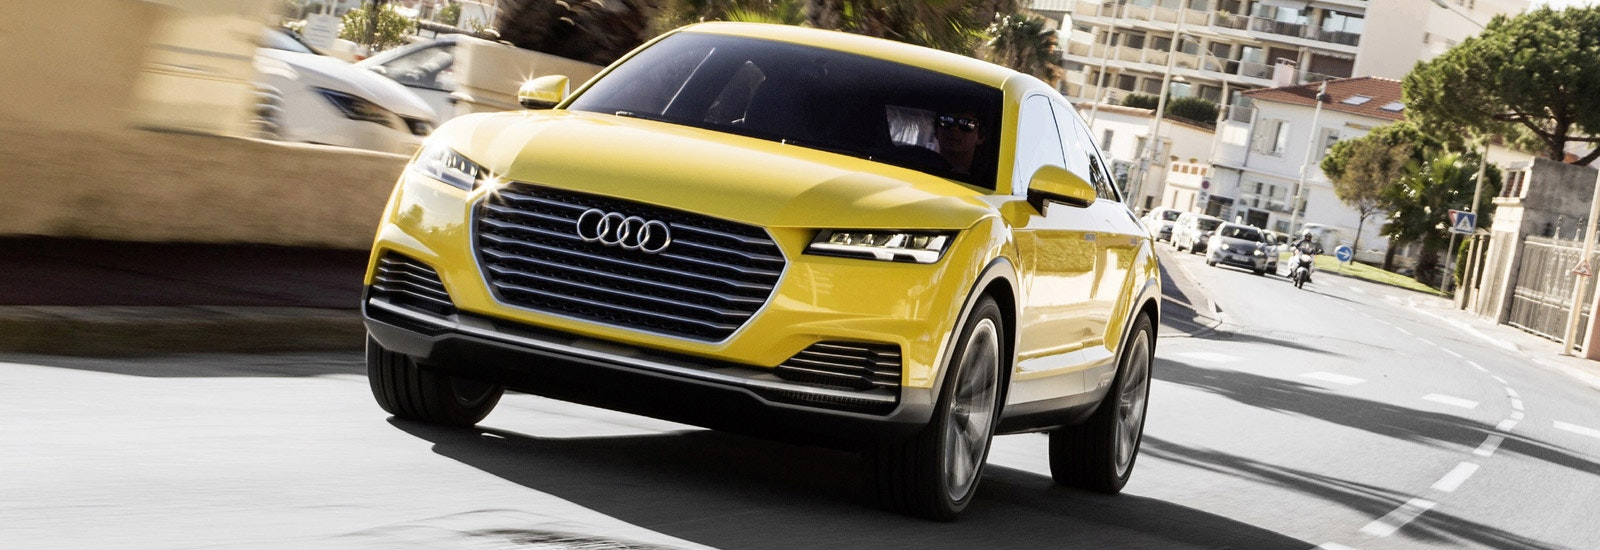 Audi Sq2 Release Date Uk >> 2019 Audi Q4 SUV coupe price, specs and release date | carwow